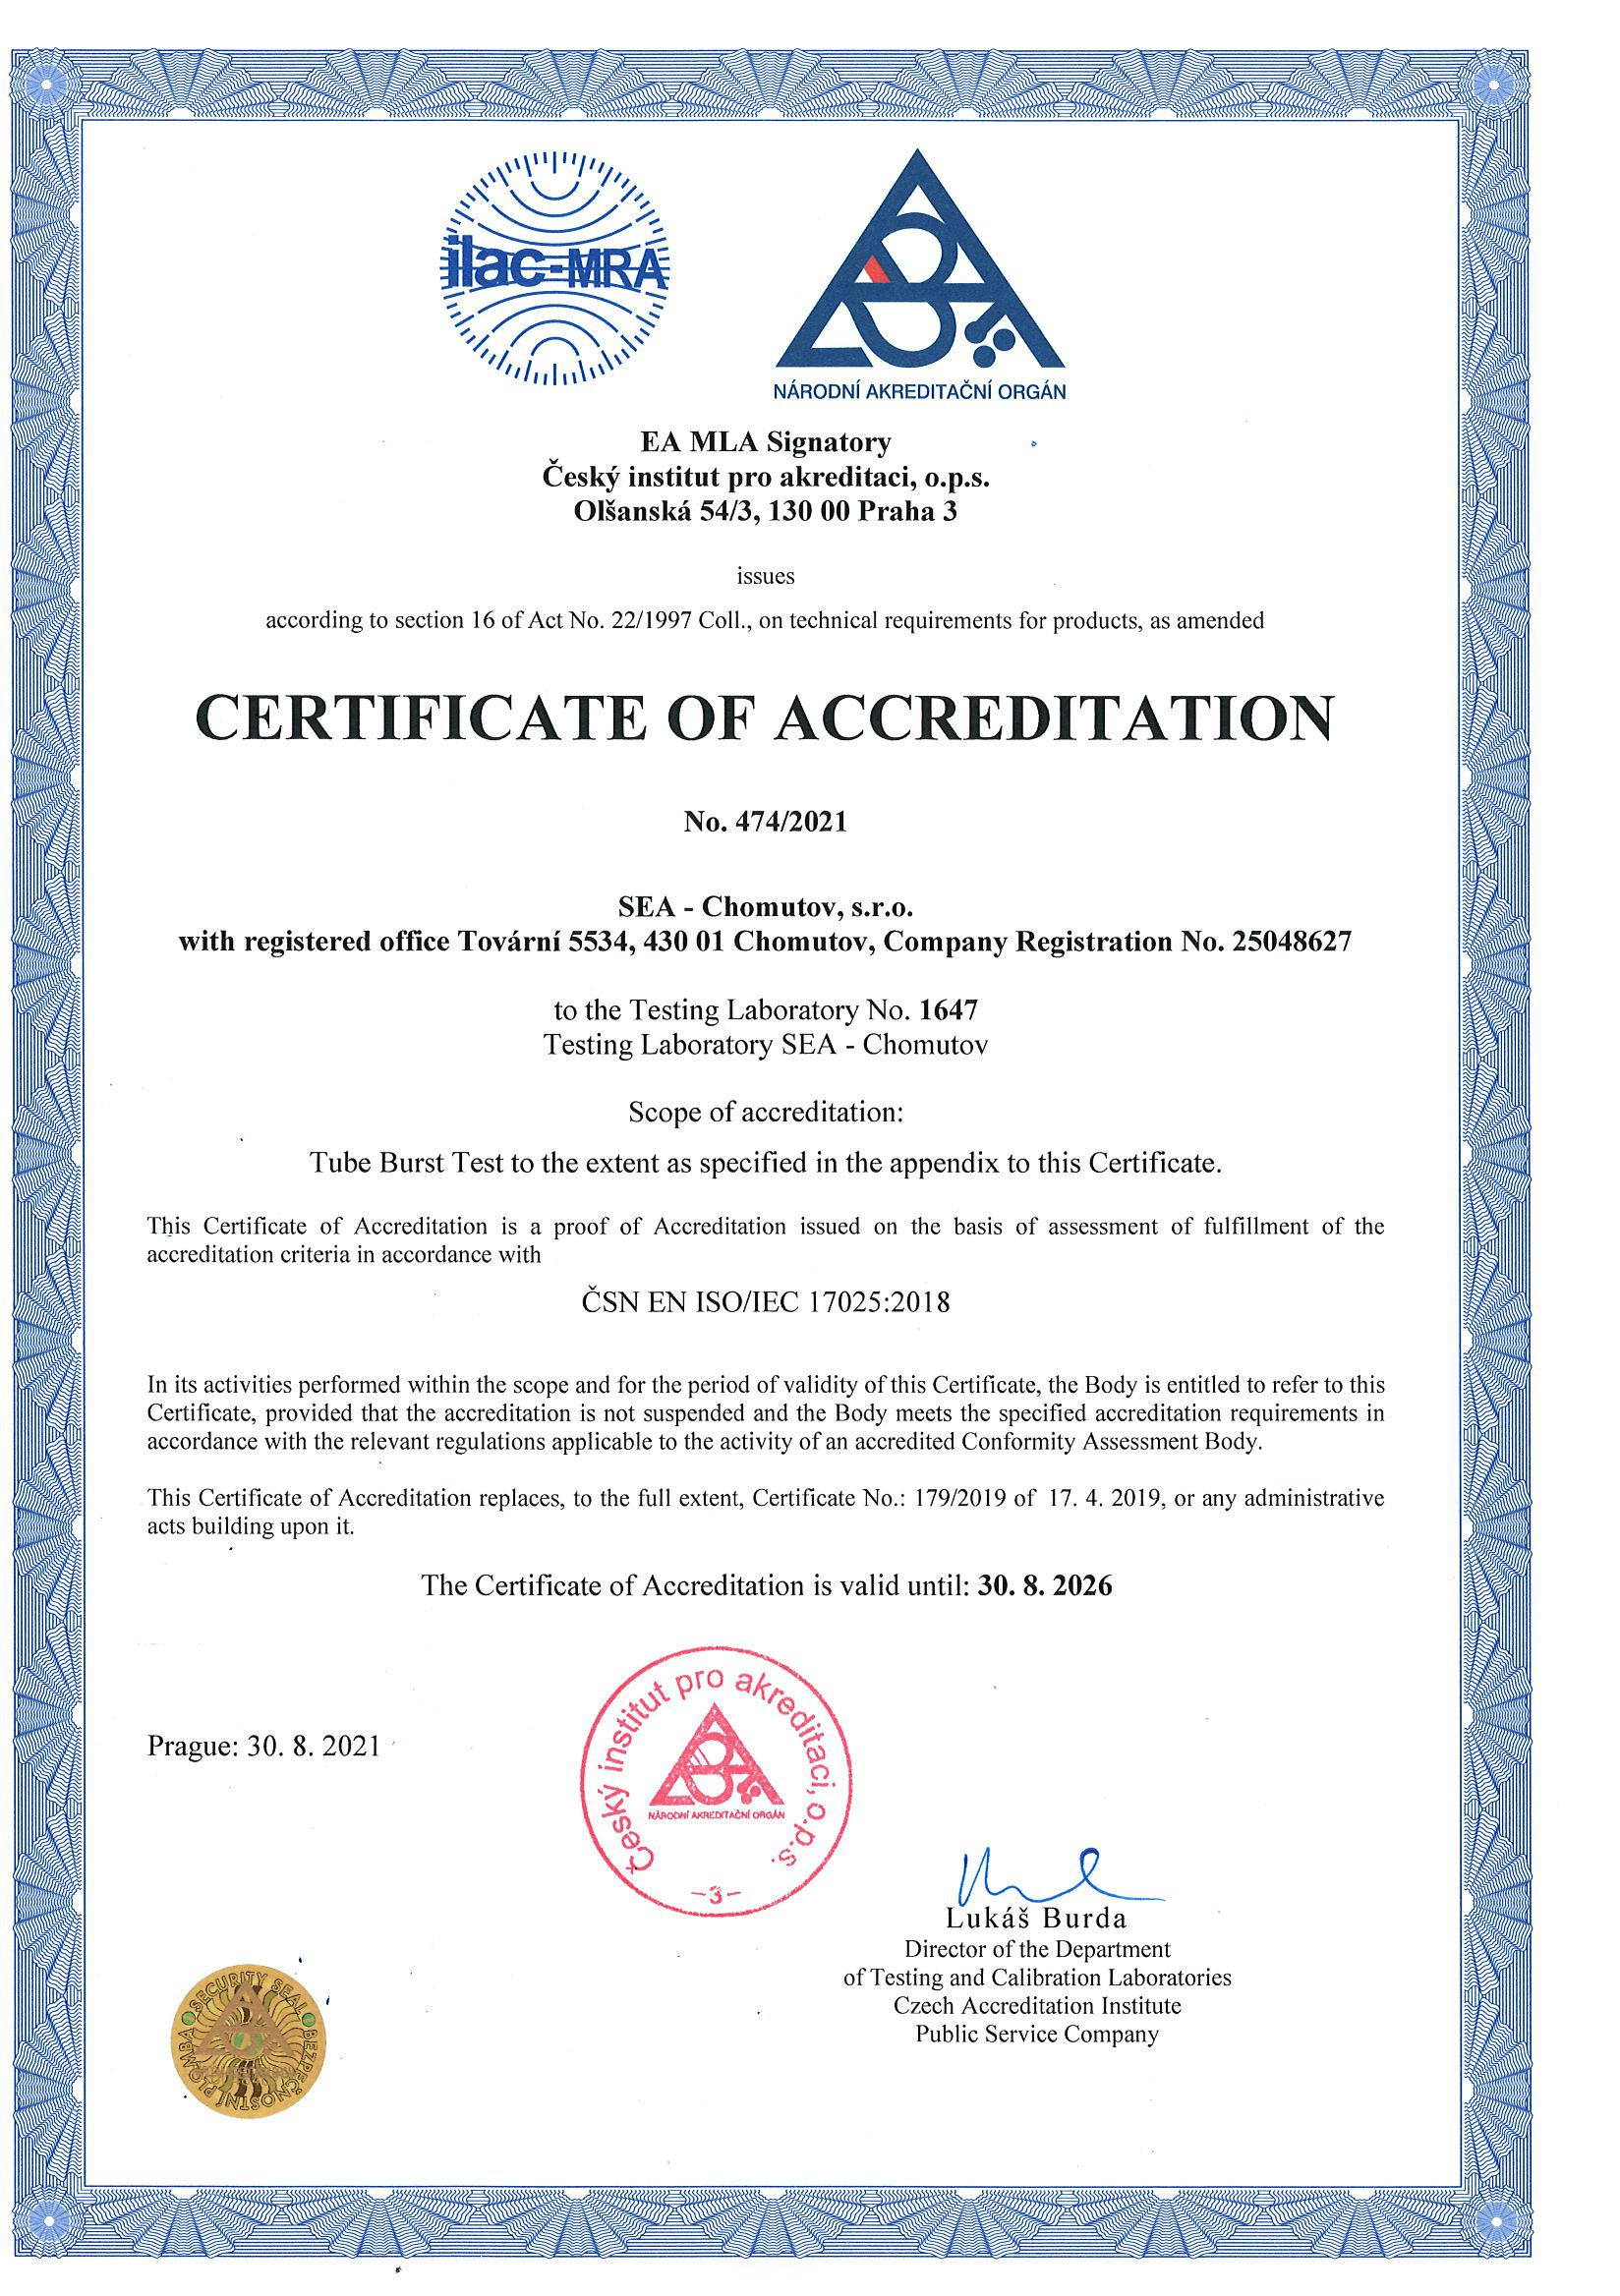 Certificate of accreditation of testing laboratory according to ČSN EN ISO / IEC 17025:2005